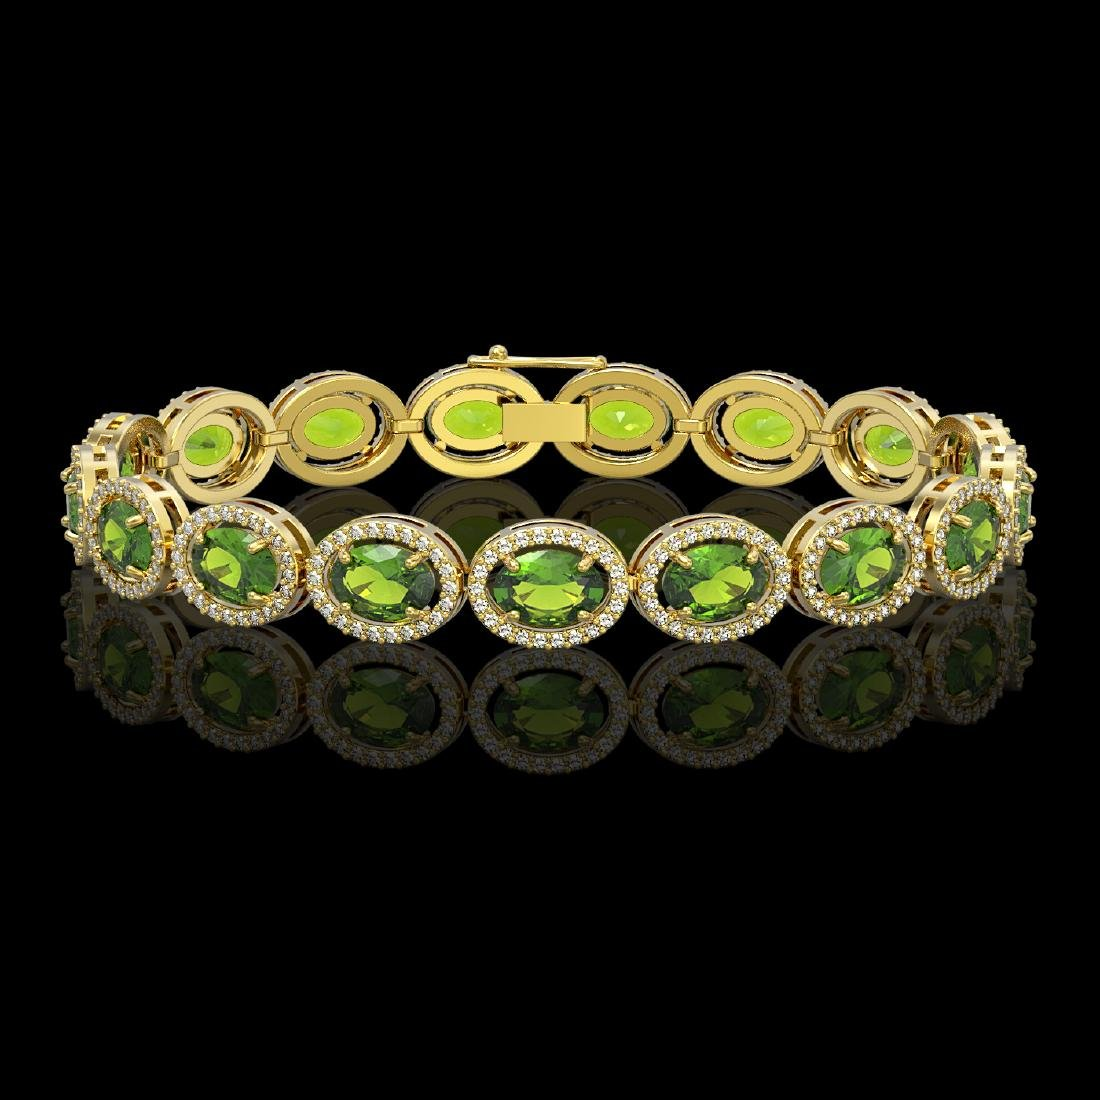 21.13 CTW Peridot & Diamond Halo Bracelet 10K Yellow